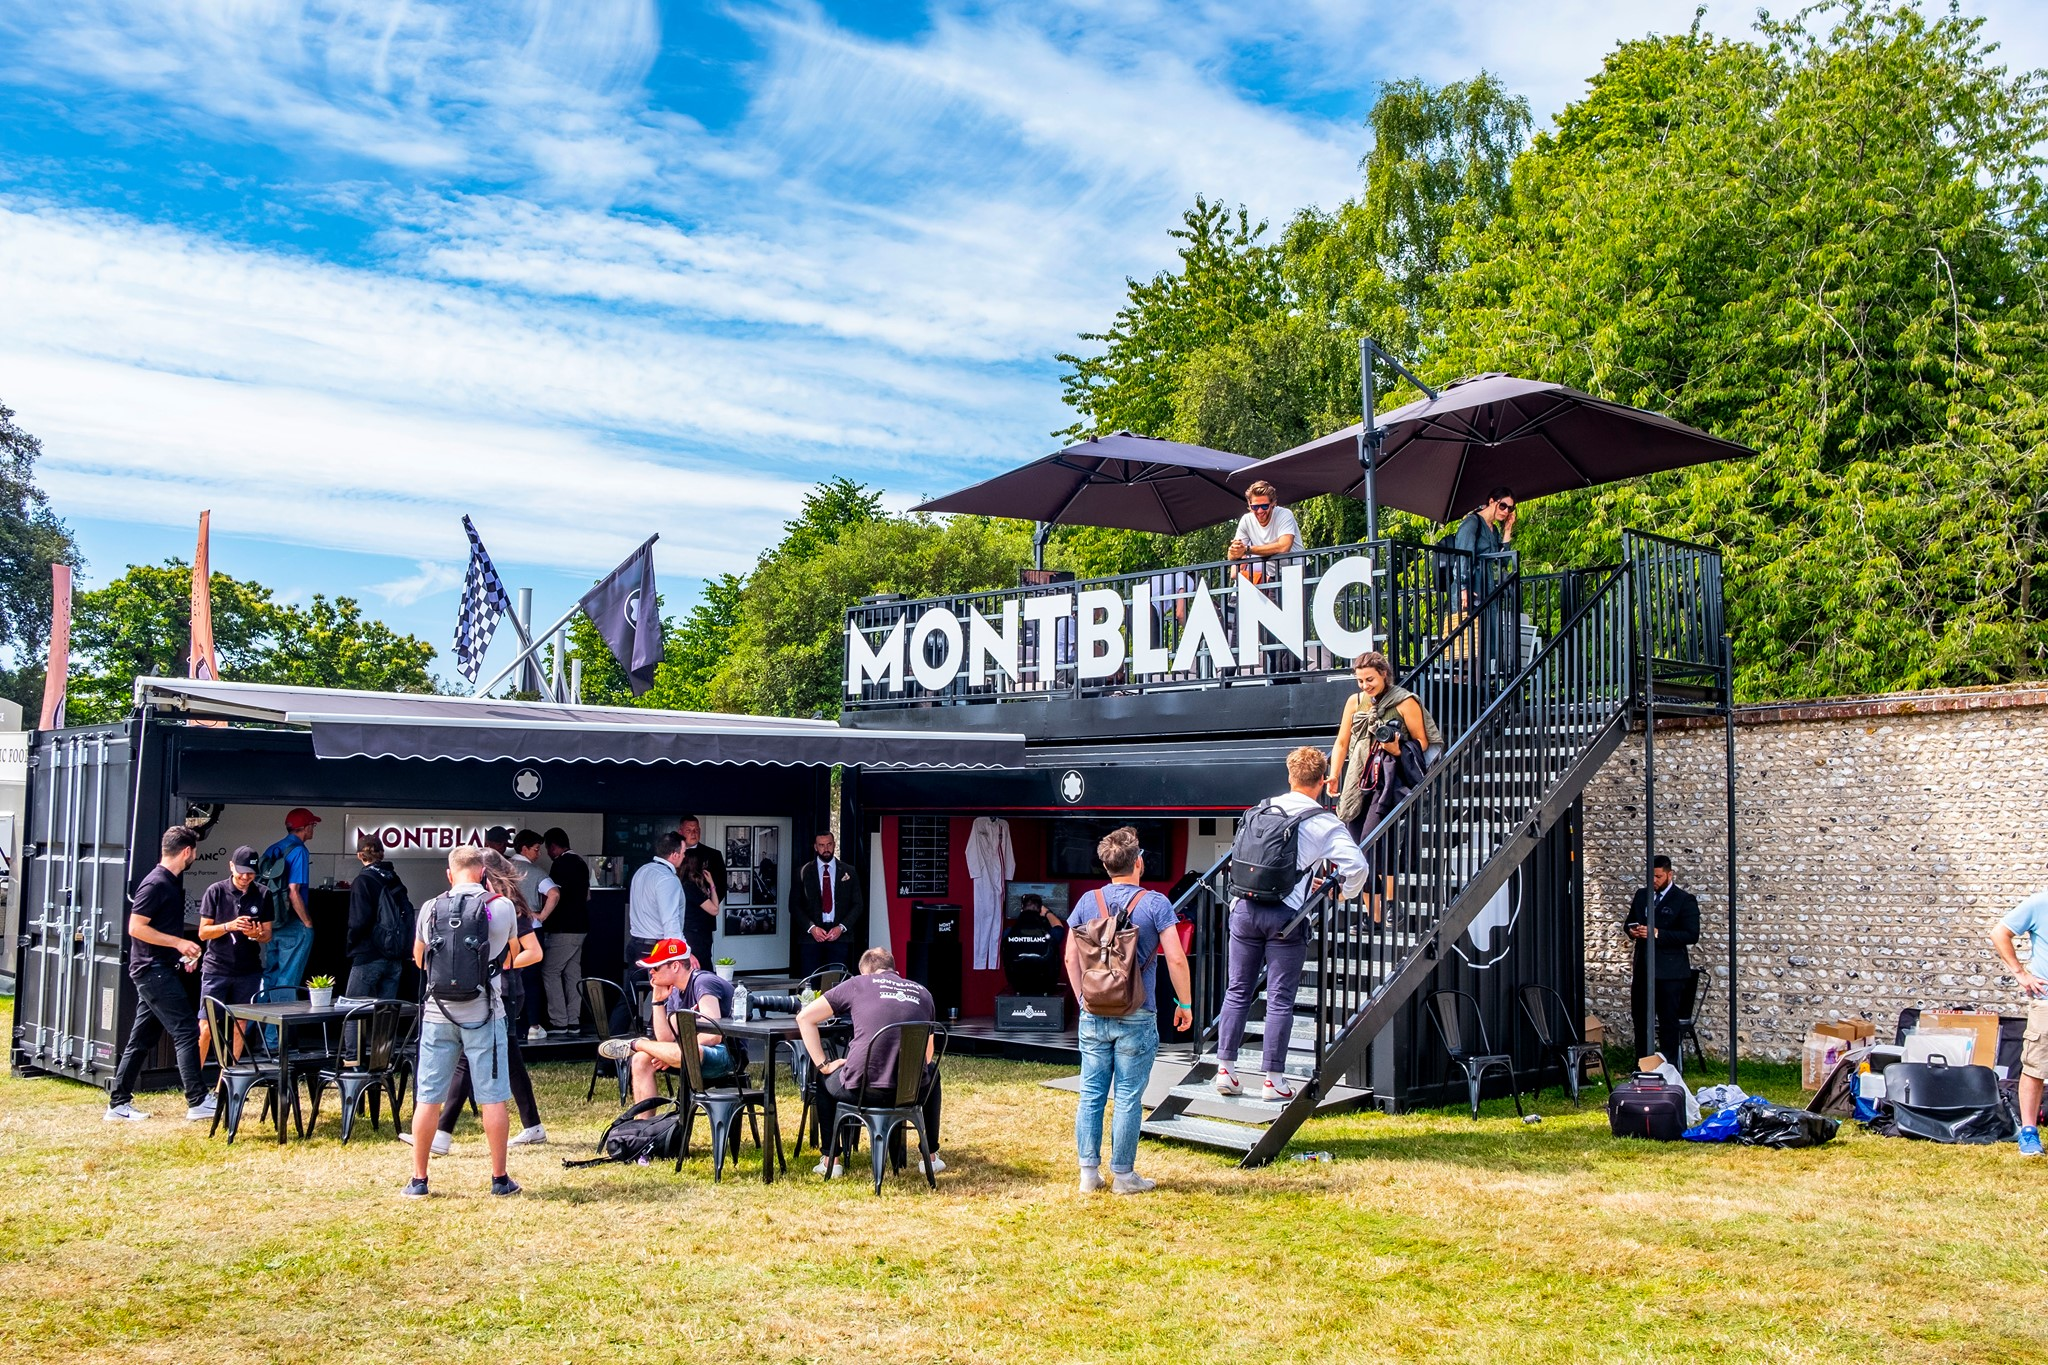 Shipping Container Converstion: Statement Event Container for Montblanc Goodwood of Speed Festival Activation